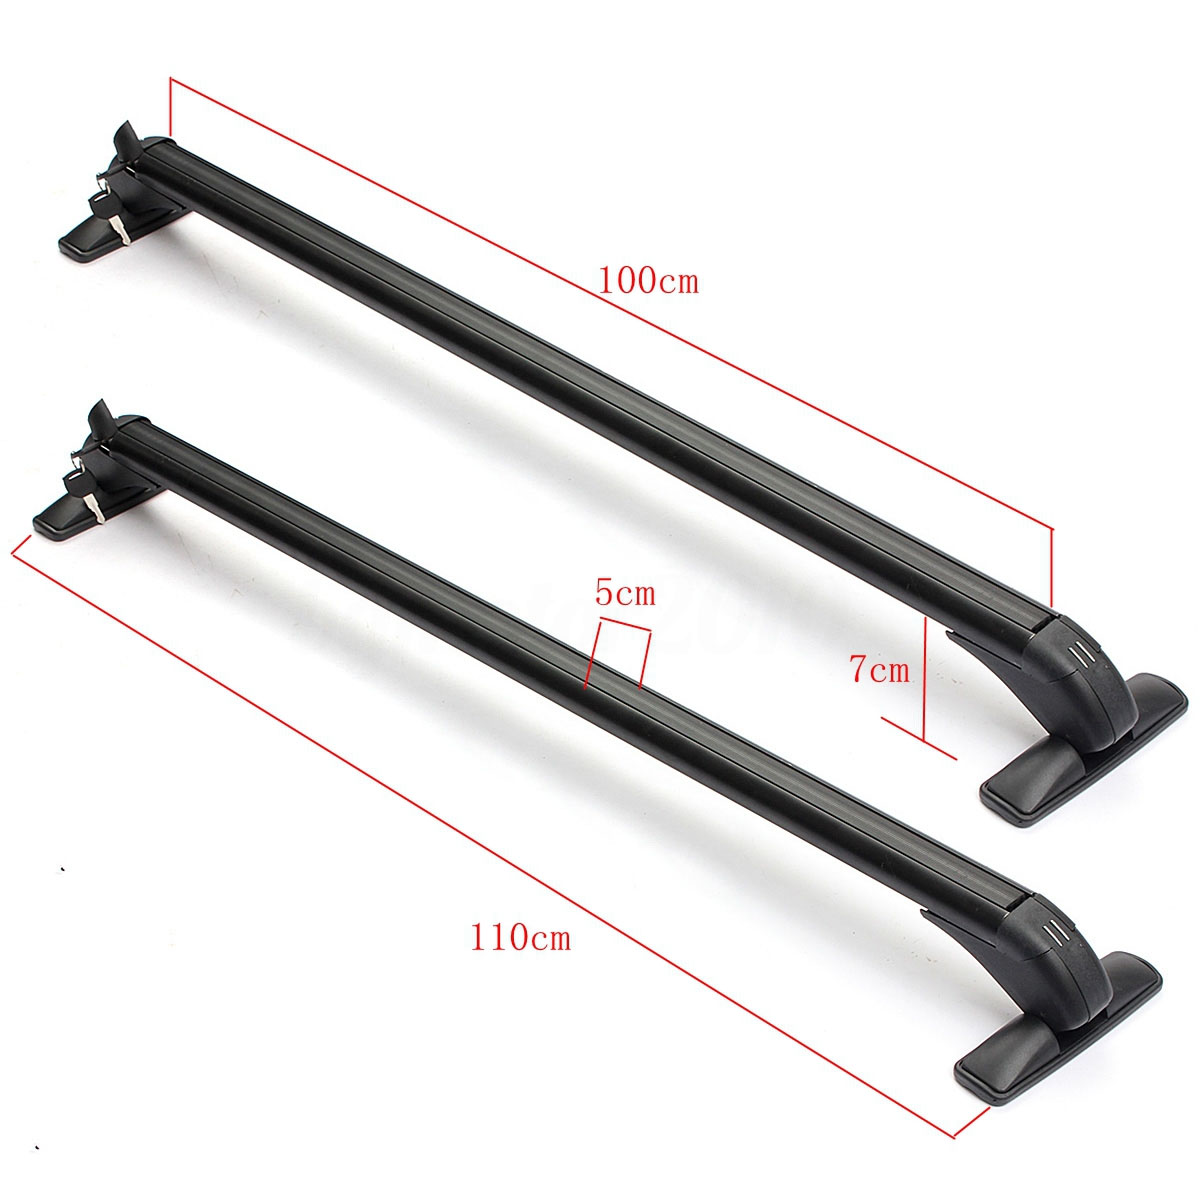 Ai CAR FUN Aluminum Alloy Silver Roof Rack Cross Bar Top Roof Rail Luggage Cargo Rack Rails Carrier with Cars for Ford Explorer 2012-2015